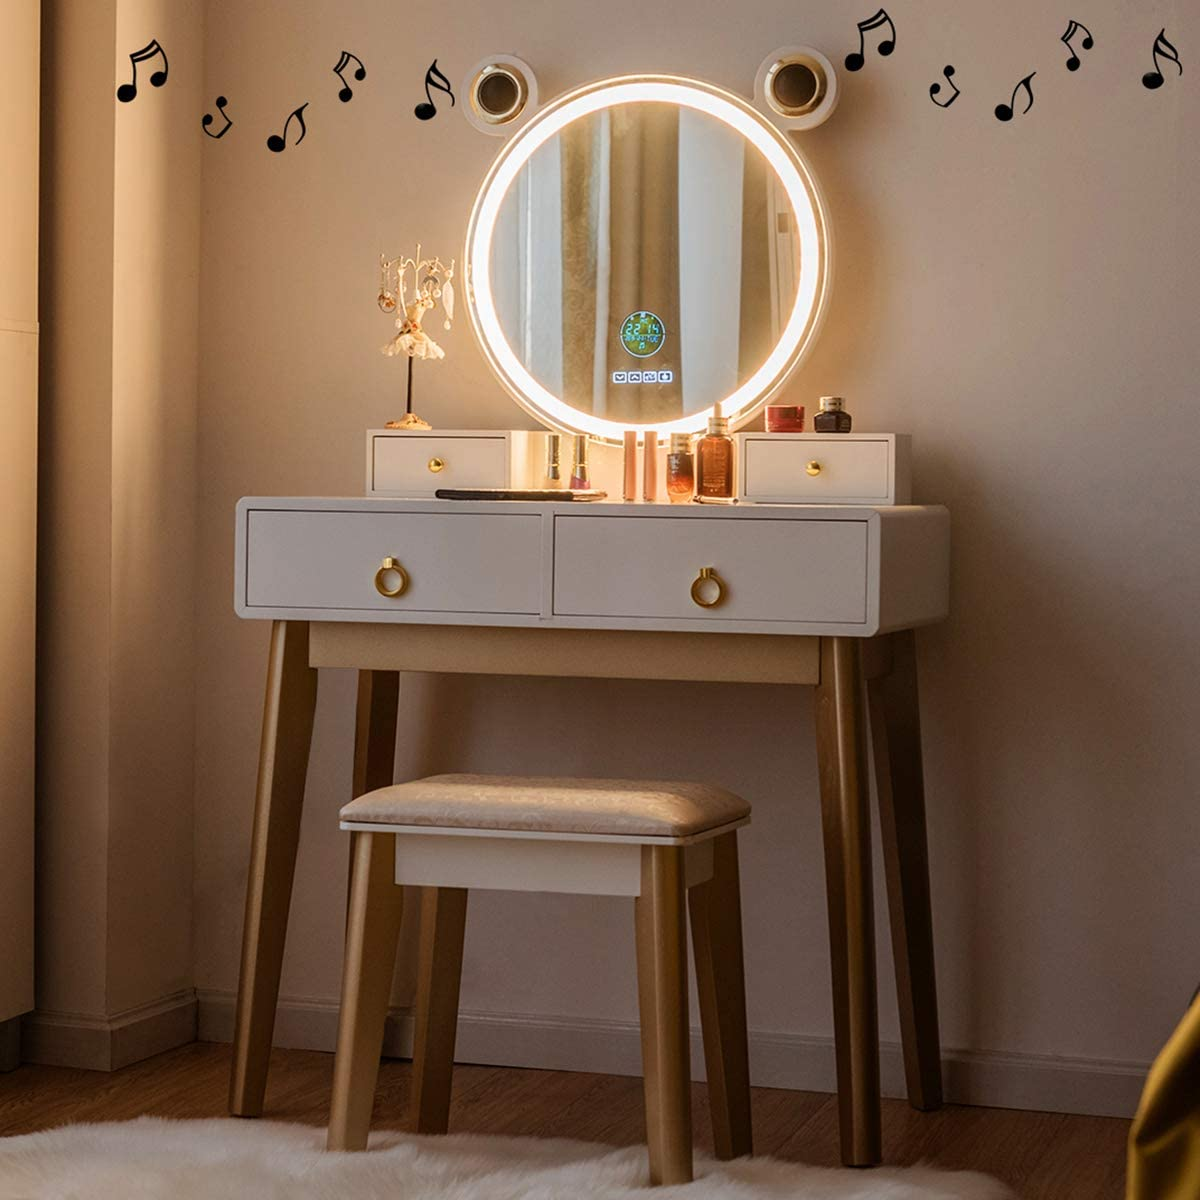 CHARMAID Vanity Set with Lighted Large discharge sale Mirror Max 50% OFF and 3 Wireless Speaker